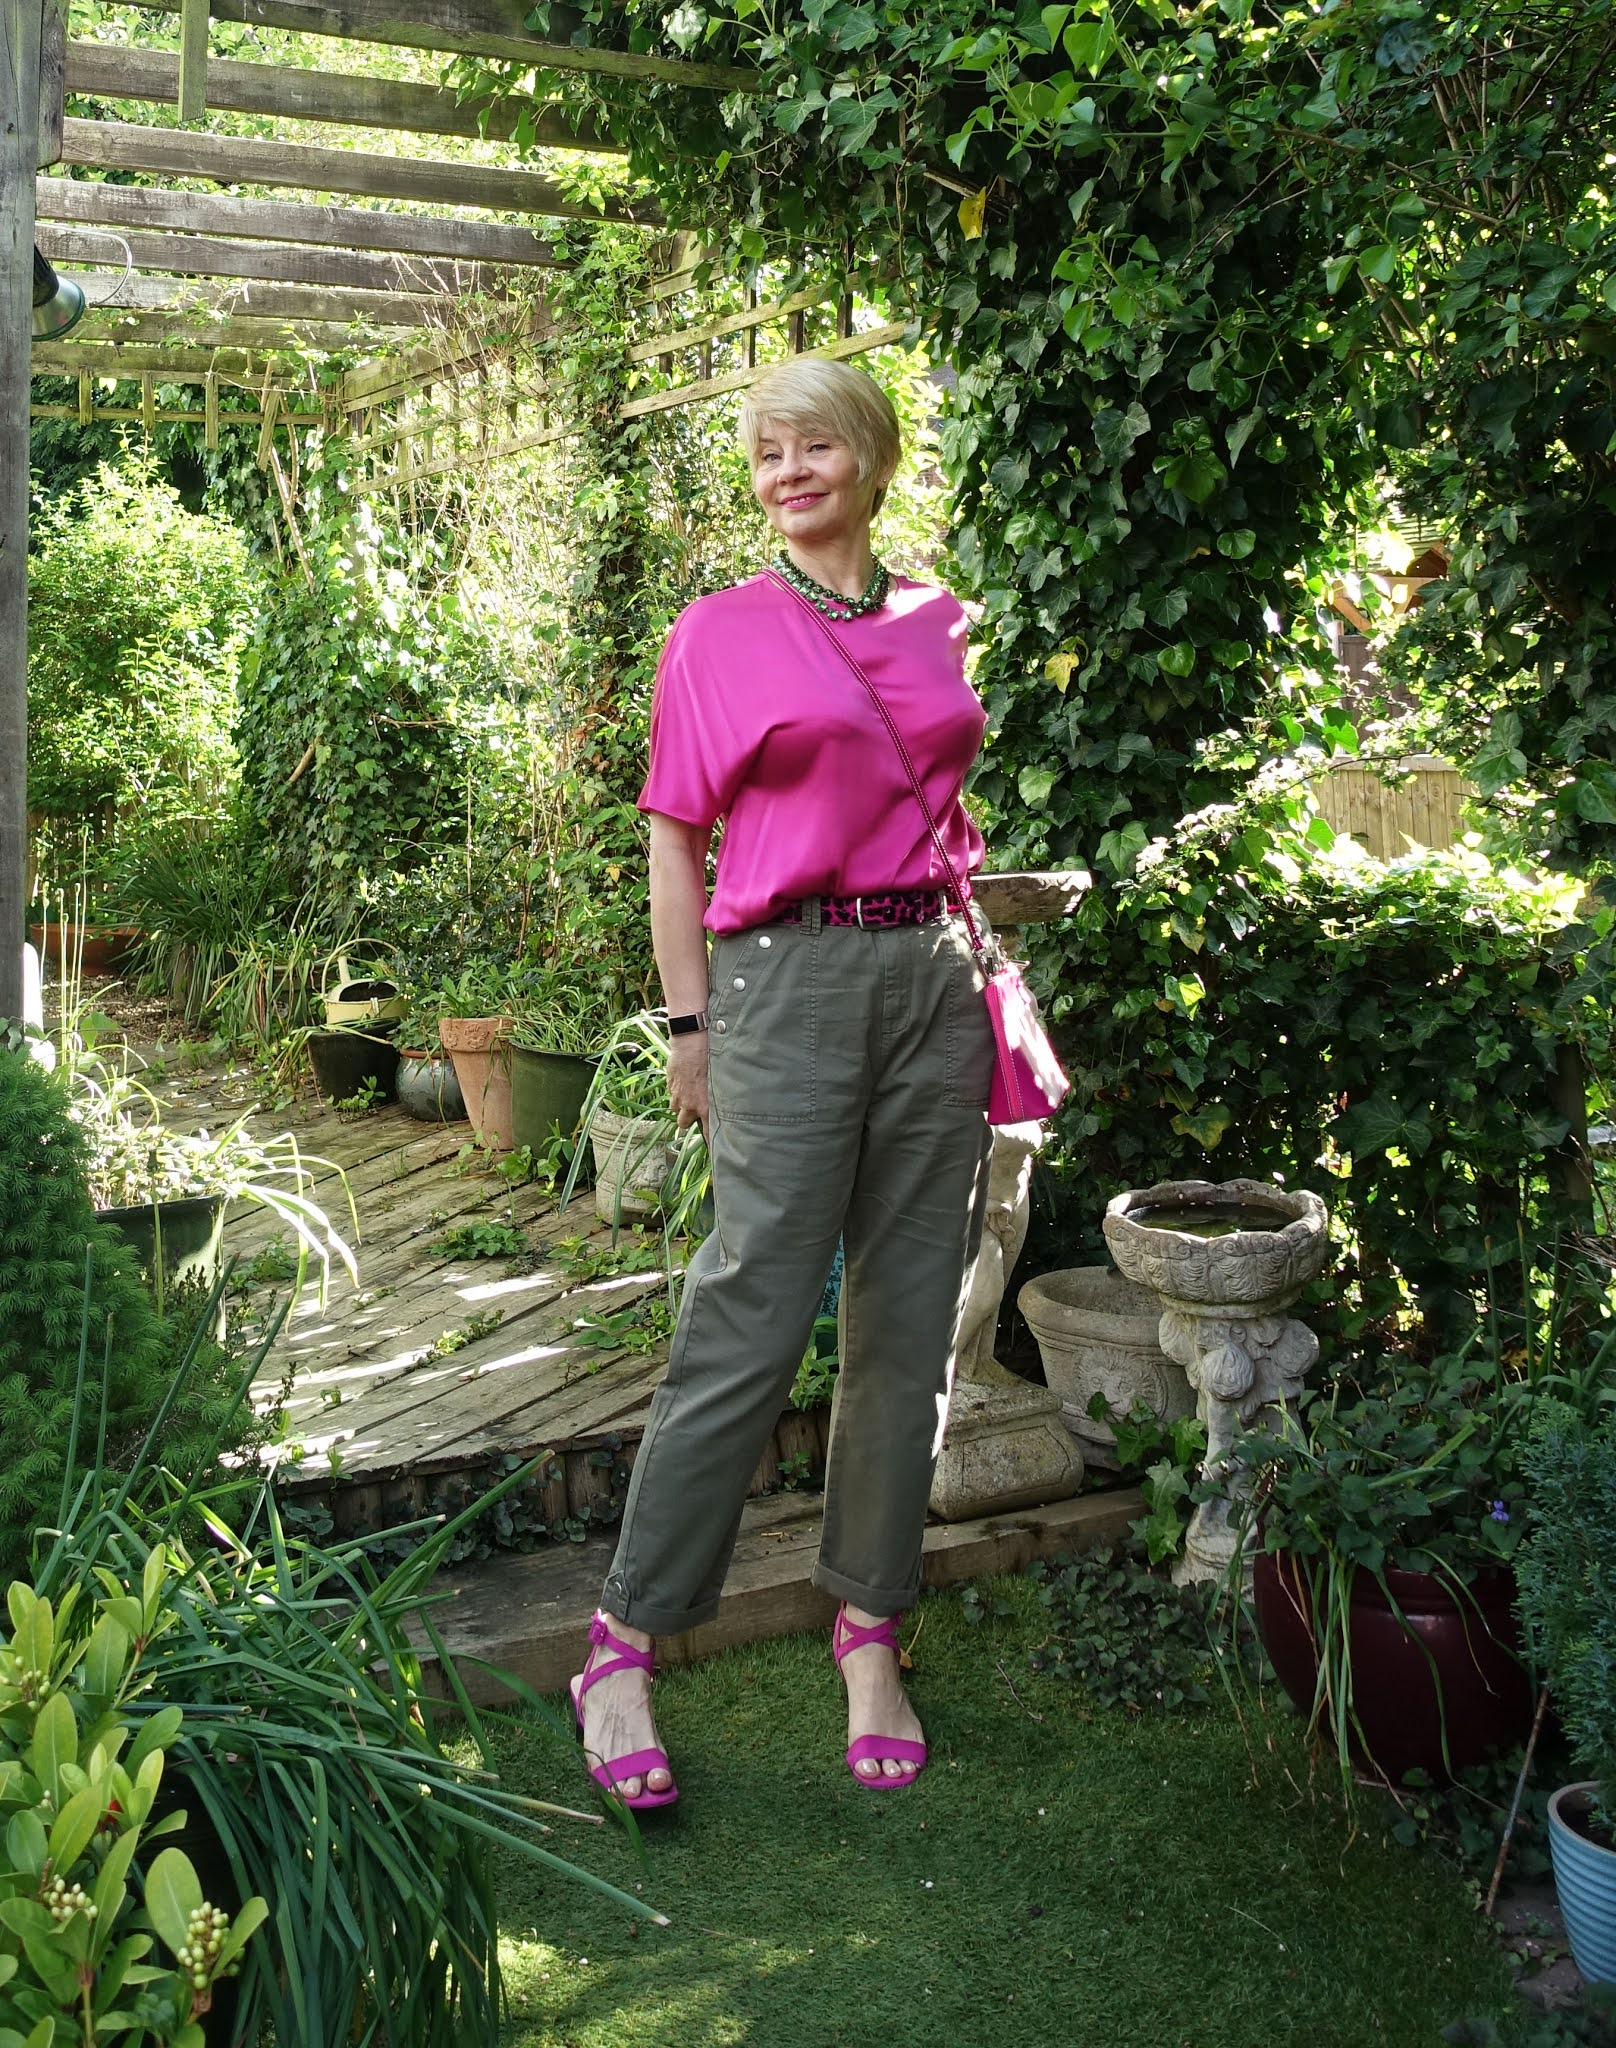 Gail Hanlon from Is This Mutton in khaki cargo trousers and bright pink blouse and sandals